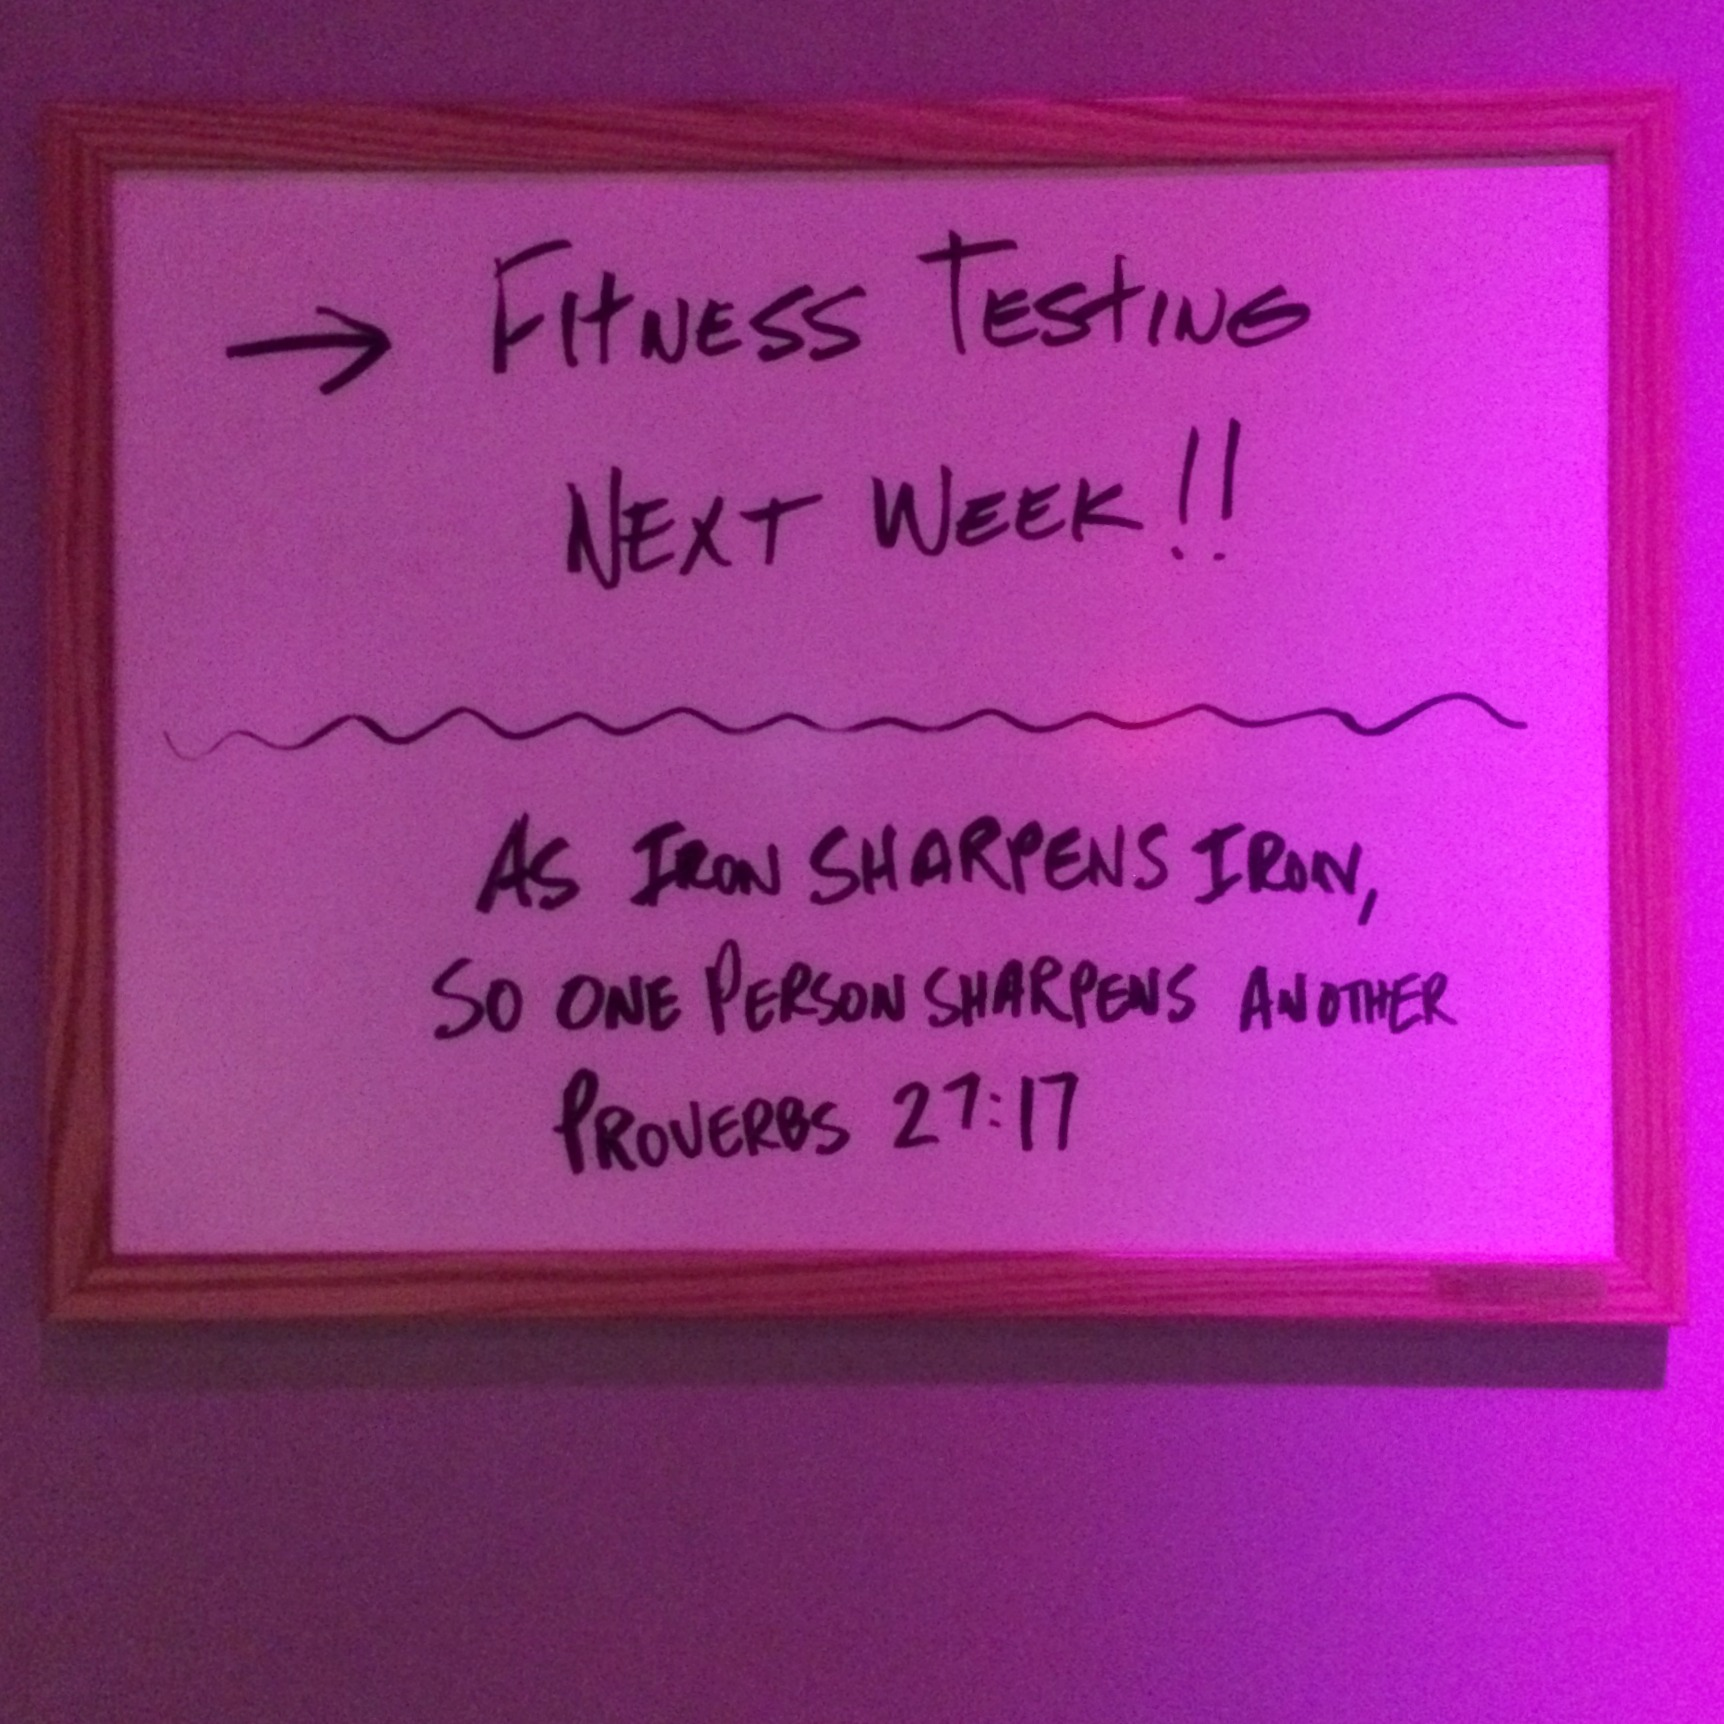 ProverbsProverbs 27:17 as iron sharpens iron on a gym white board